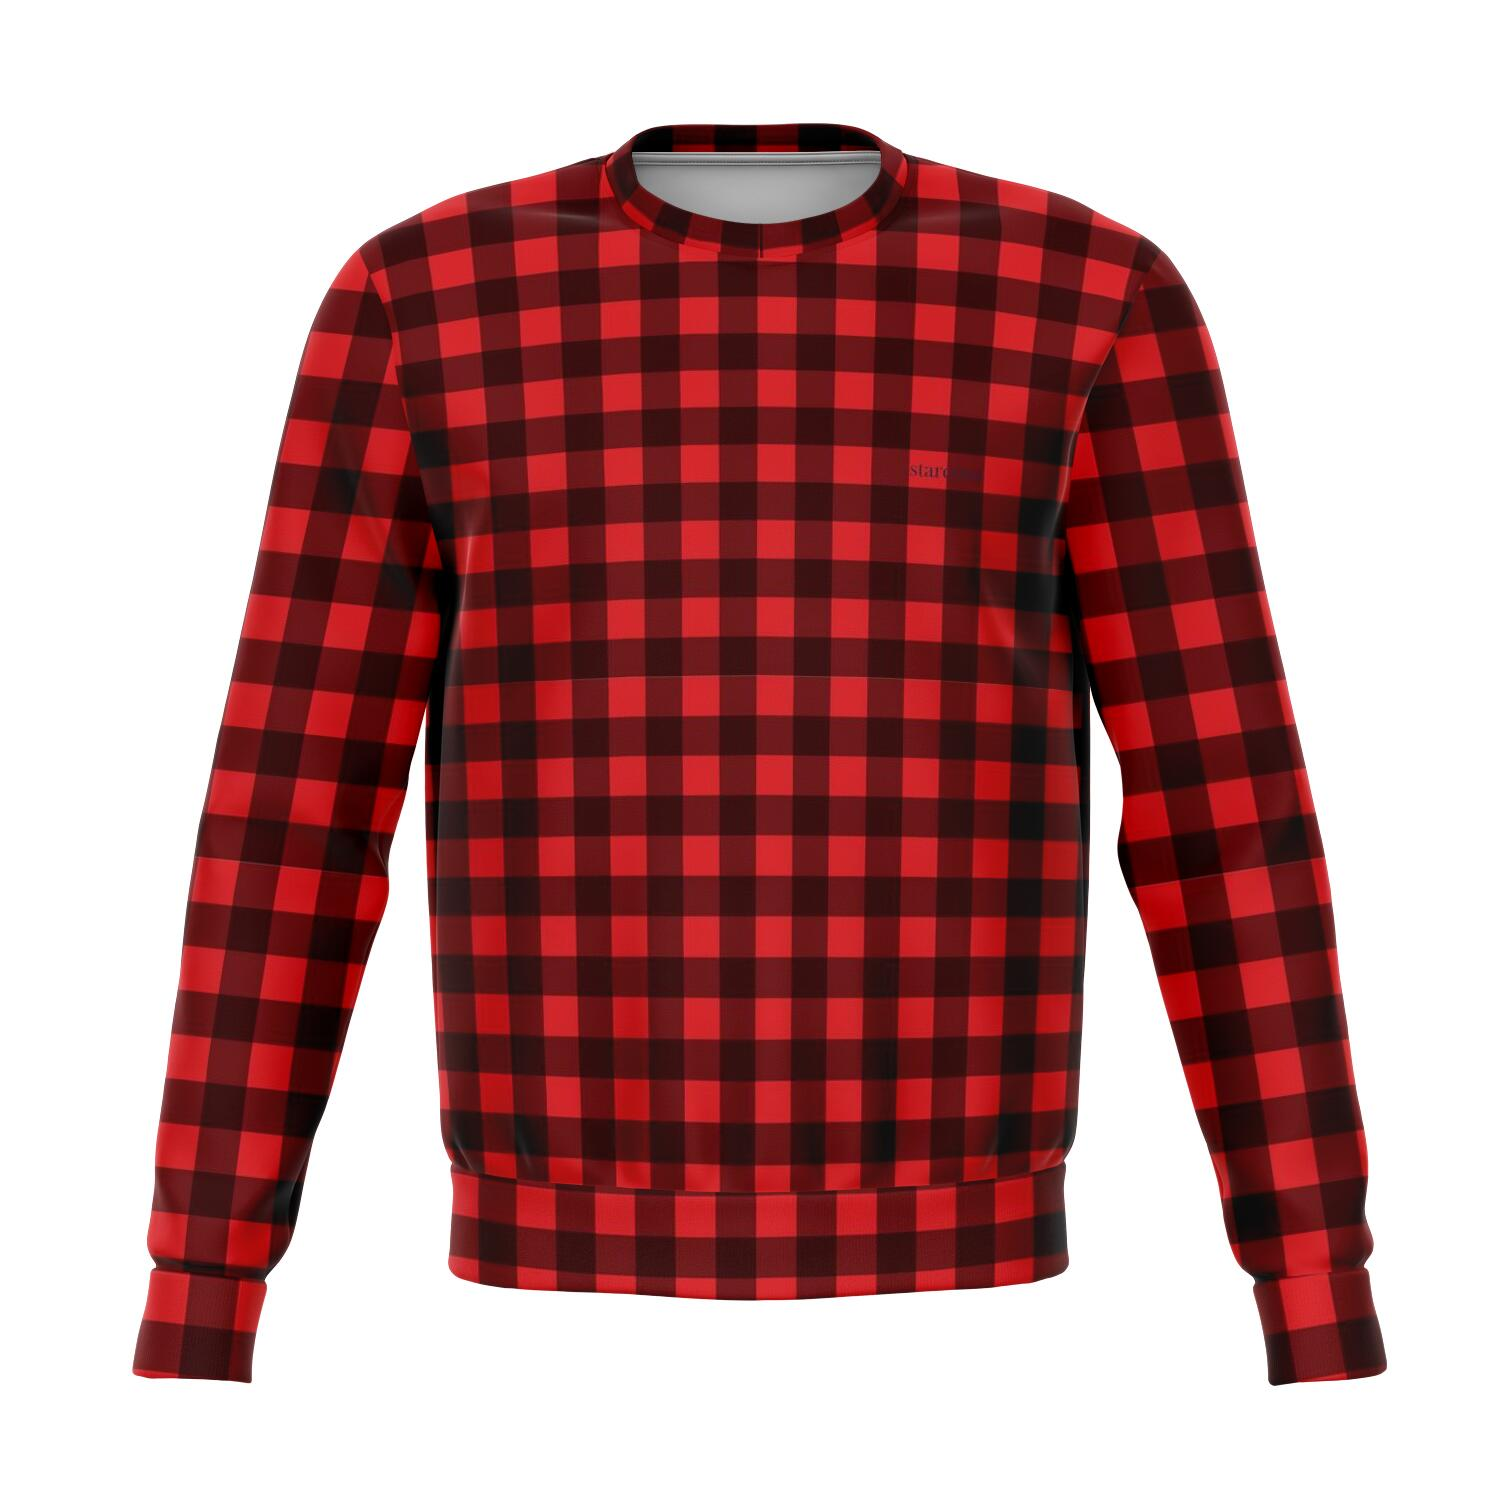 Red Buffalo Plaid Sweatshirt, Christmas Holiday Sweater Black and Red Check Checkered Plaid Cotton Crewneck Winter Top - Starcove Design